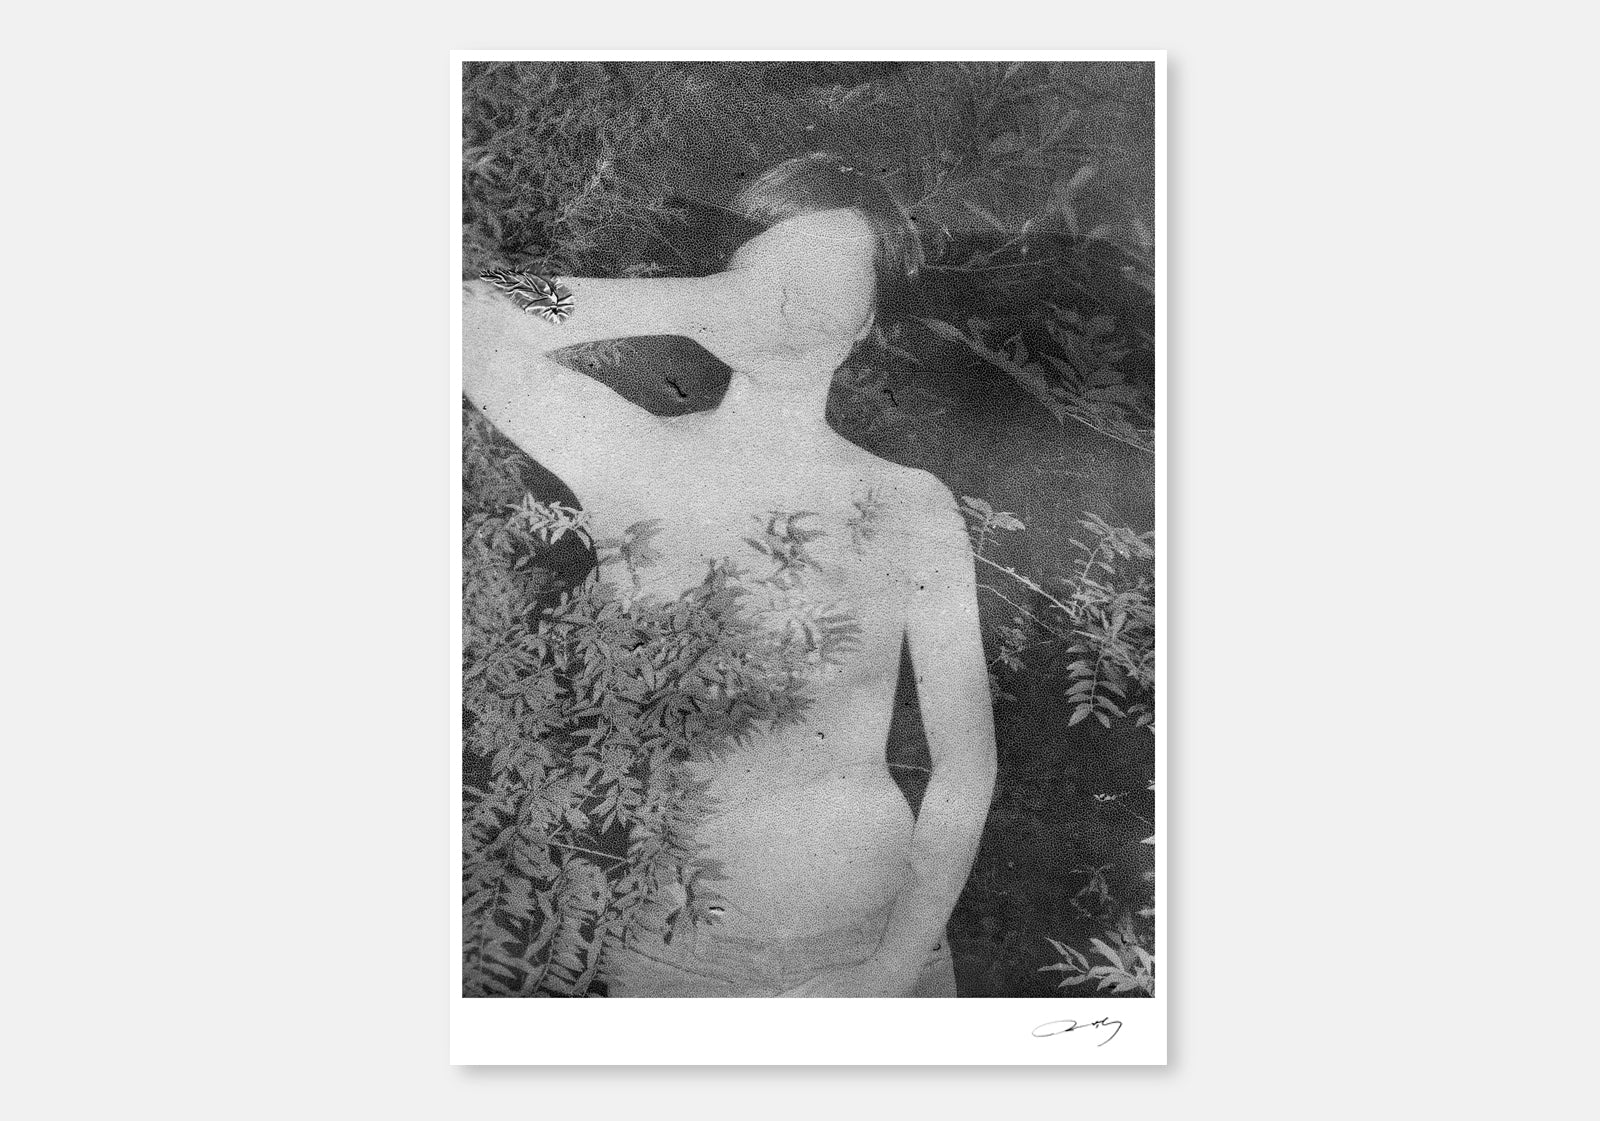 Untitled, Daisuke Yokota, (Unframed, Numbered, Signed) - The Library Project